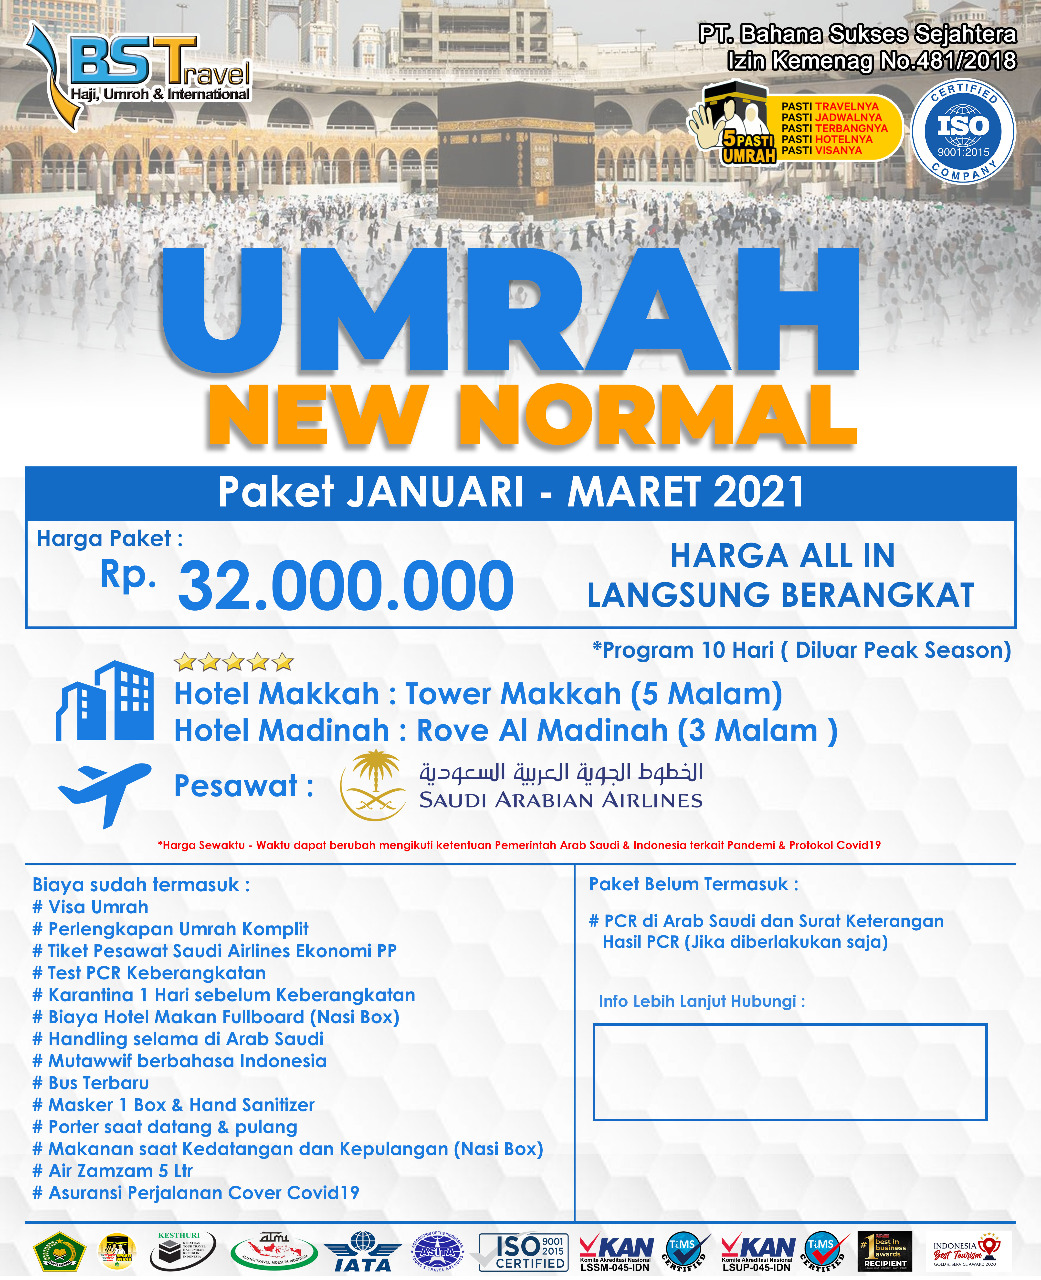 Paket Umroh New Normal Januari - Maret 2021